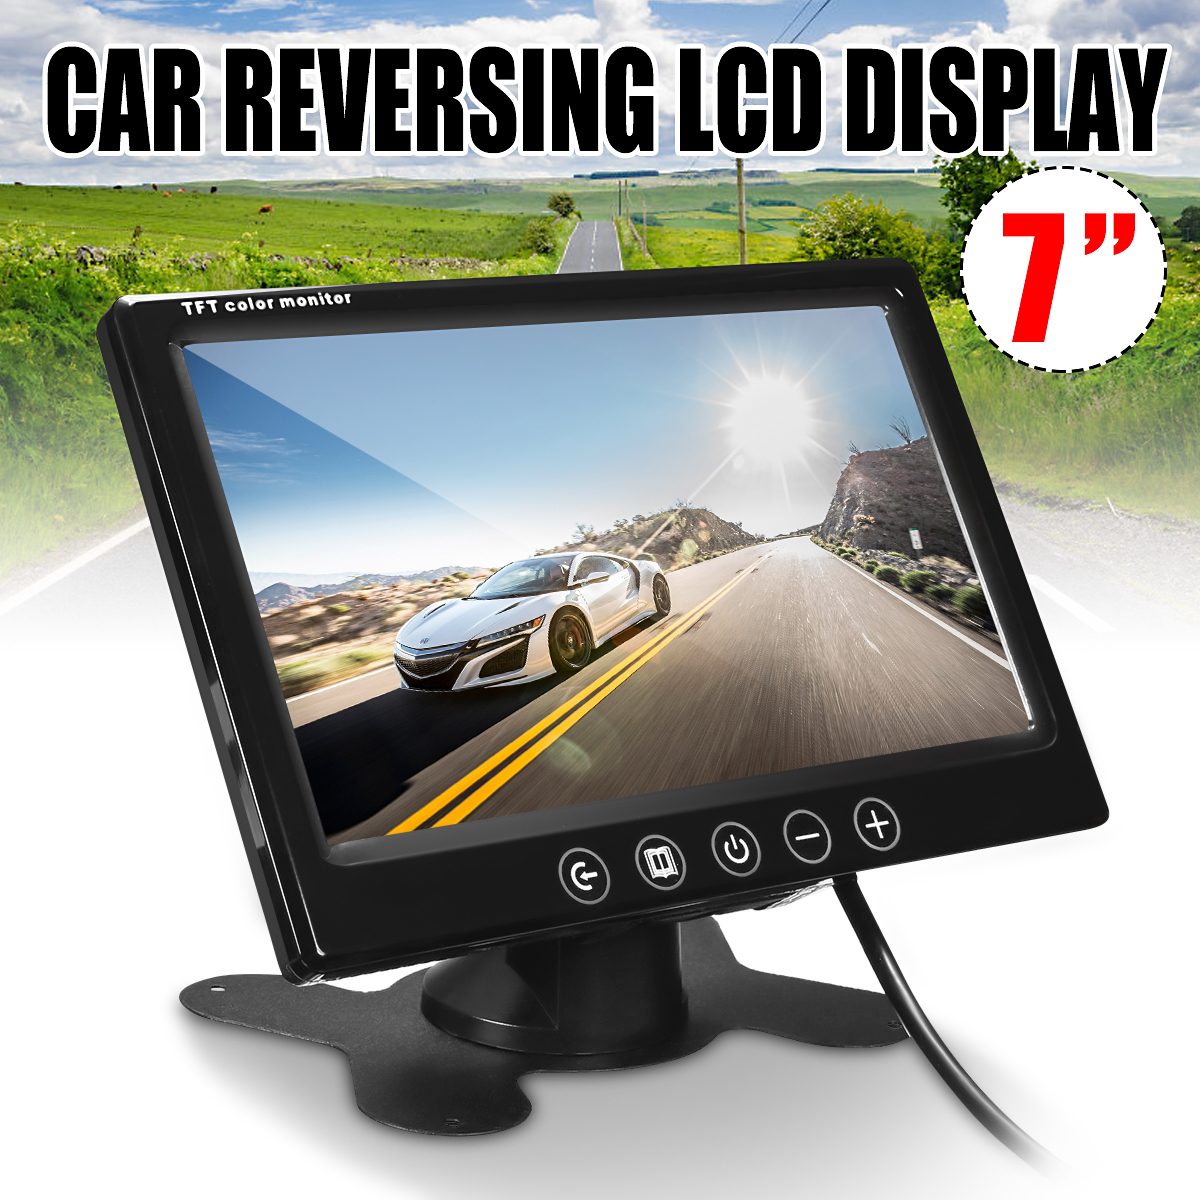 7 Inch Split Screen Quad Monitor 4CH Video Input Windshield Style Parking Dashboard for Car Rear View Camera Car-styling car rear view system 7inch tft colour quad 4ch video input car monitor for reverseing cctv car camera monitor